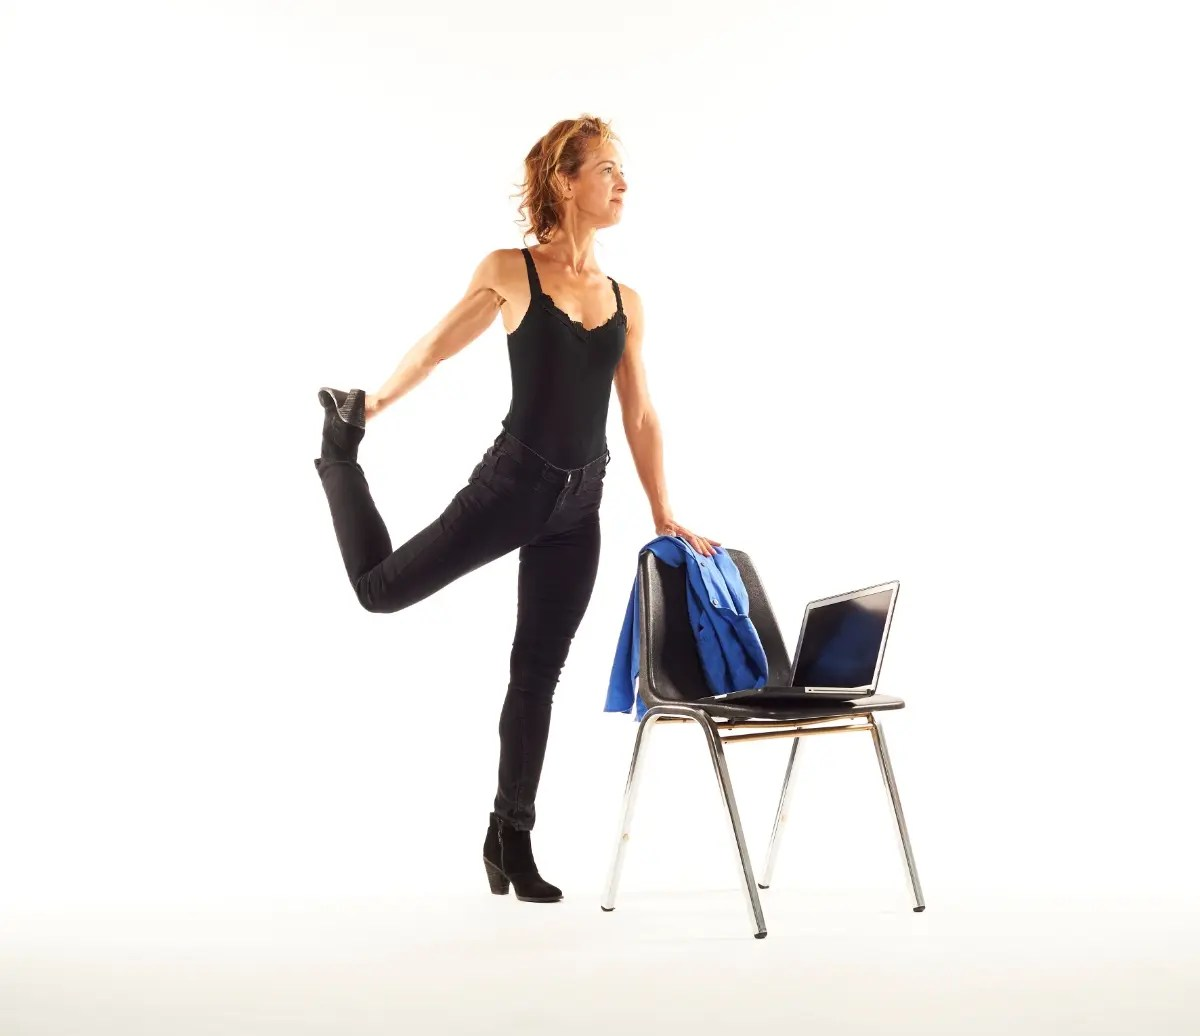 Fit Chair Aug 26 Get Fit While You Sit Chair Yoga Glen Cove Ny Patch